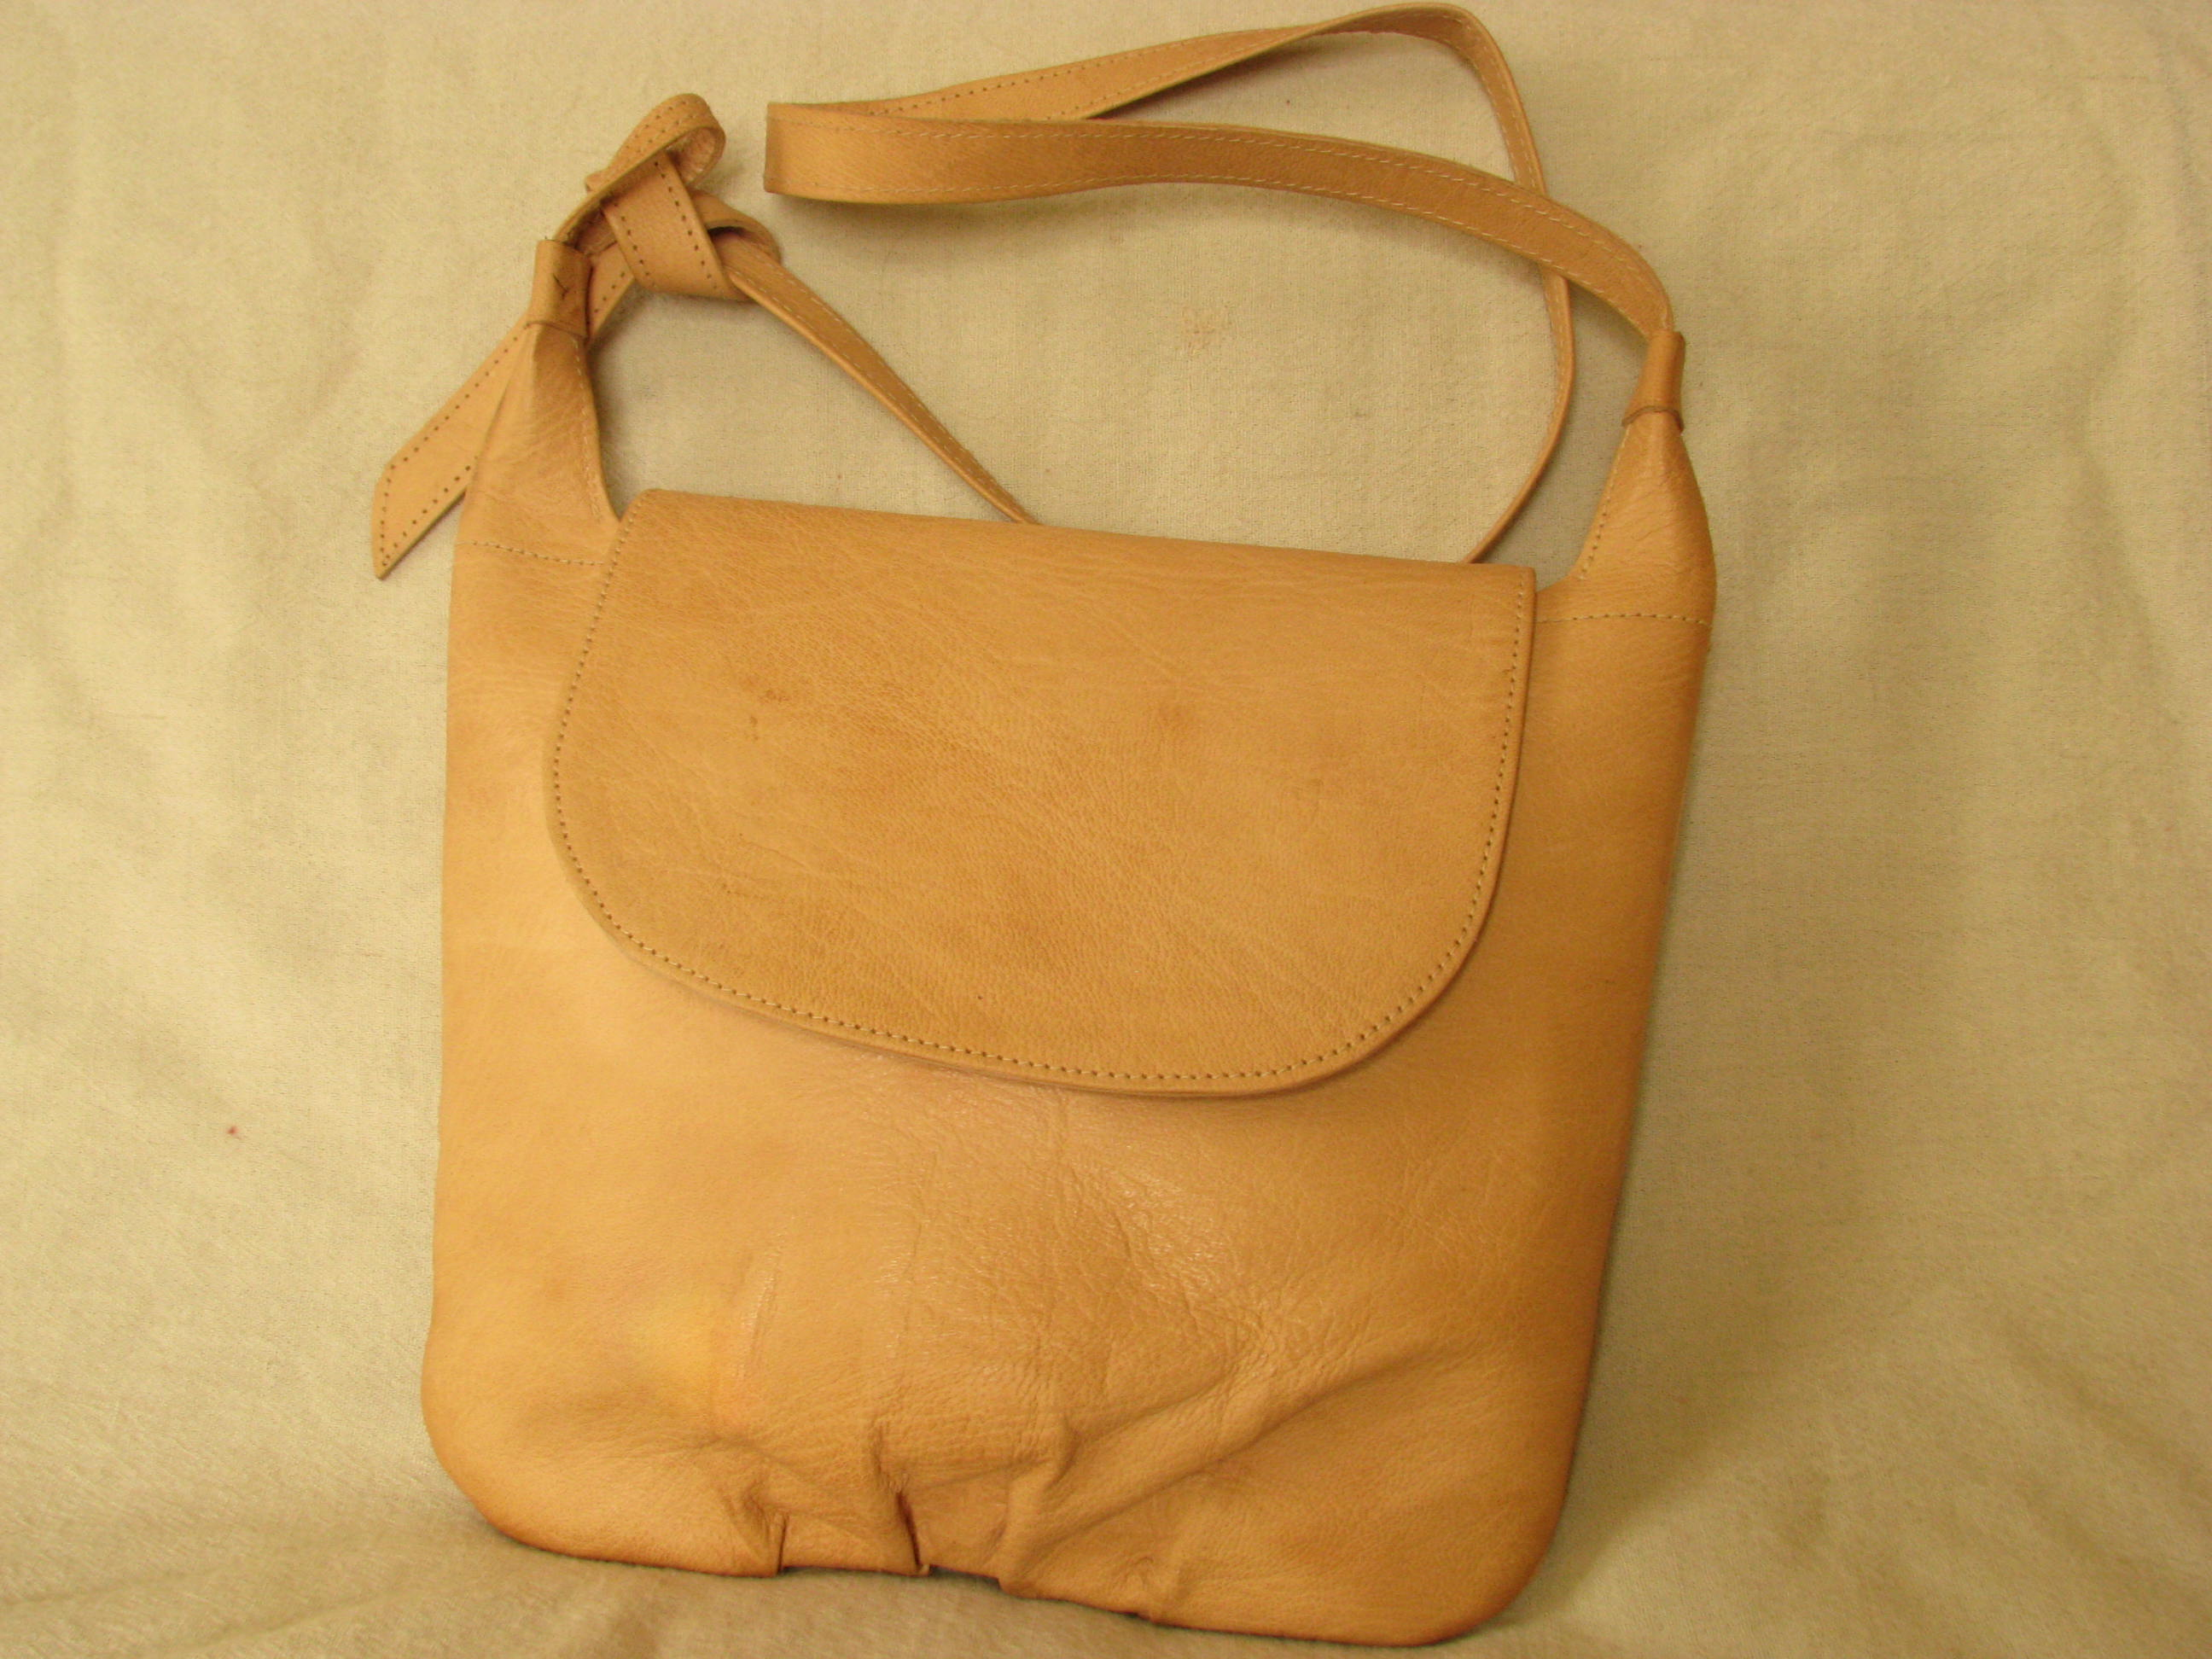 Gundara - Fluffy - shoulder bag - genuine leather - made in Afghanistan